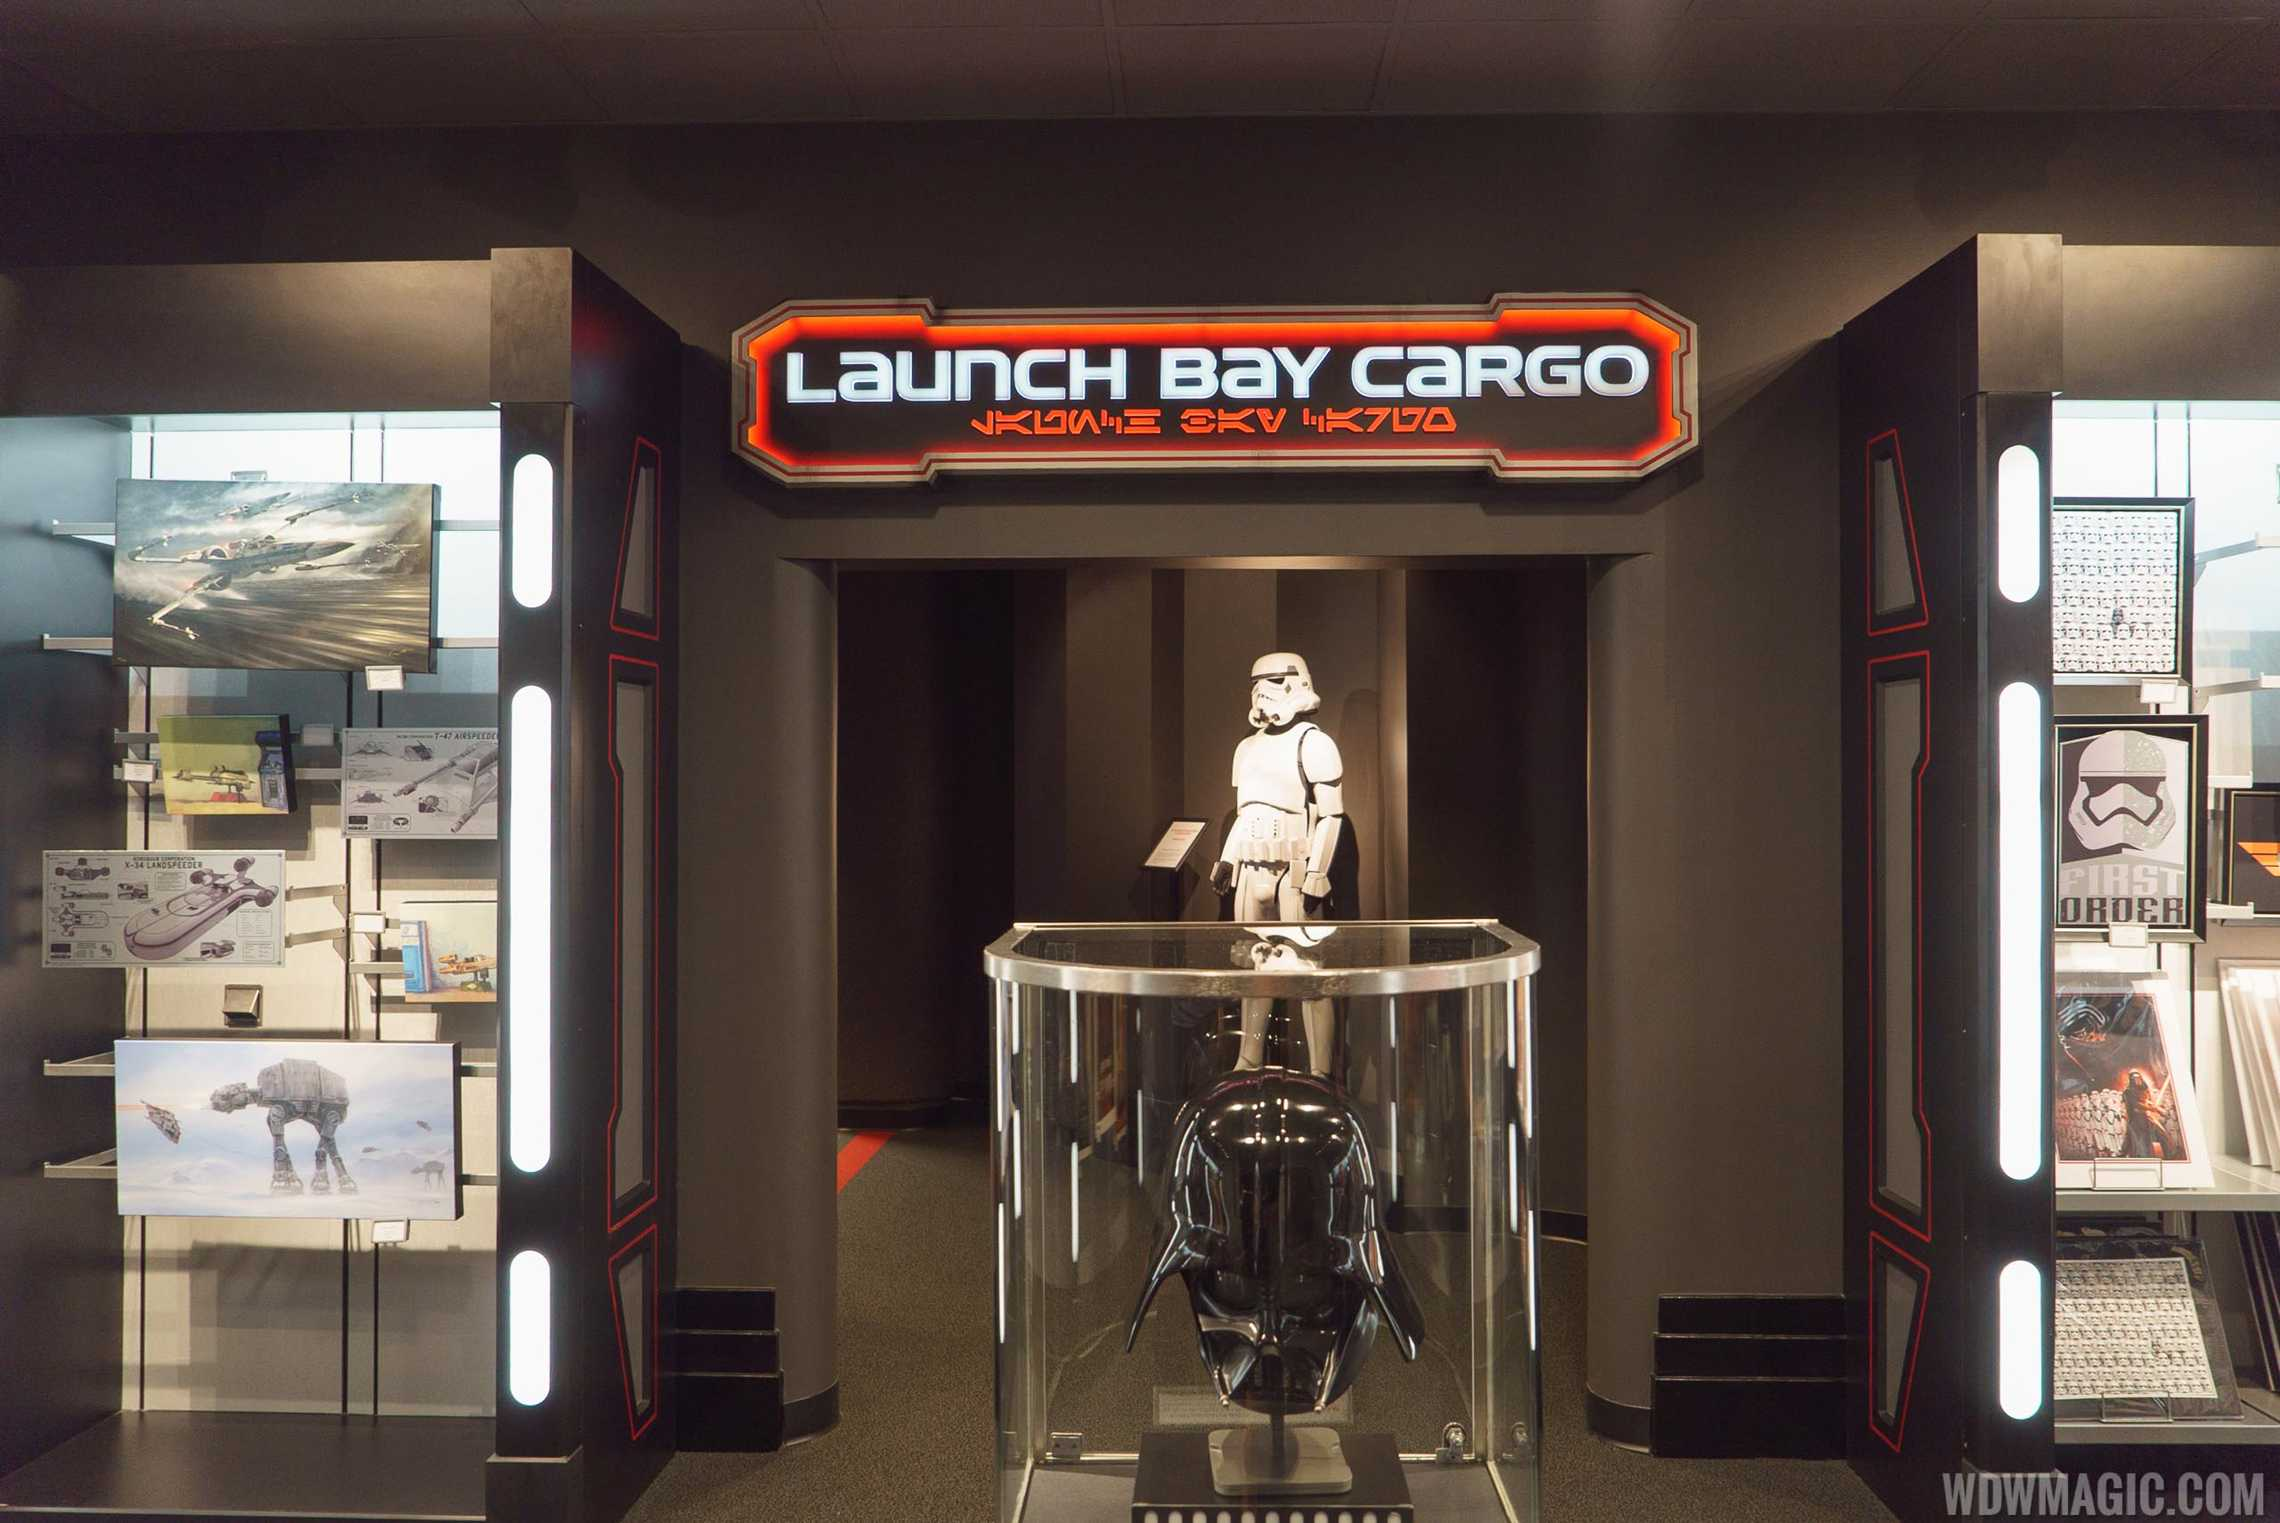 Star Wars Launch Bay - Launch Bay Cargo entrance